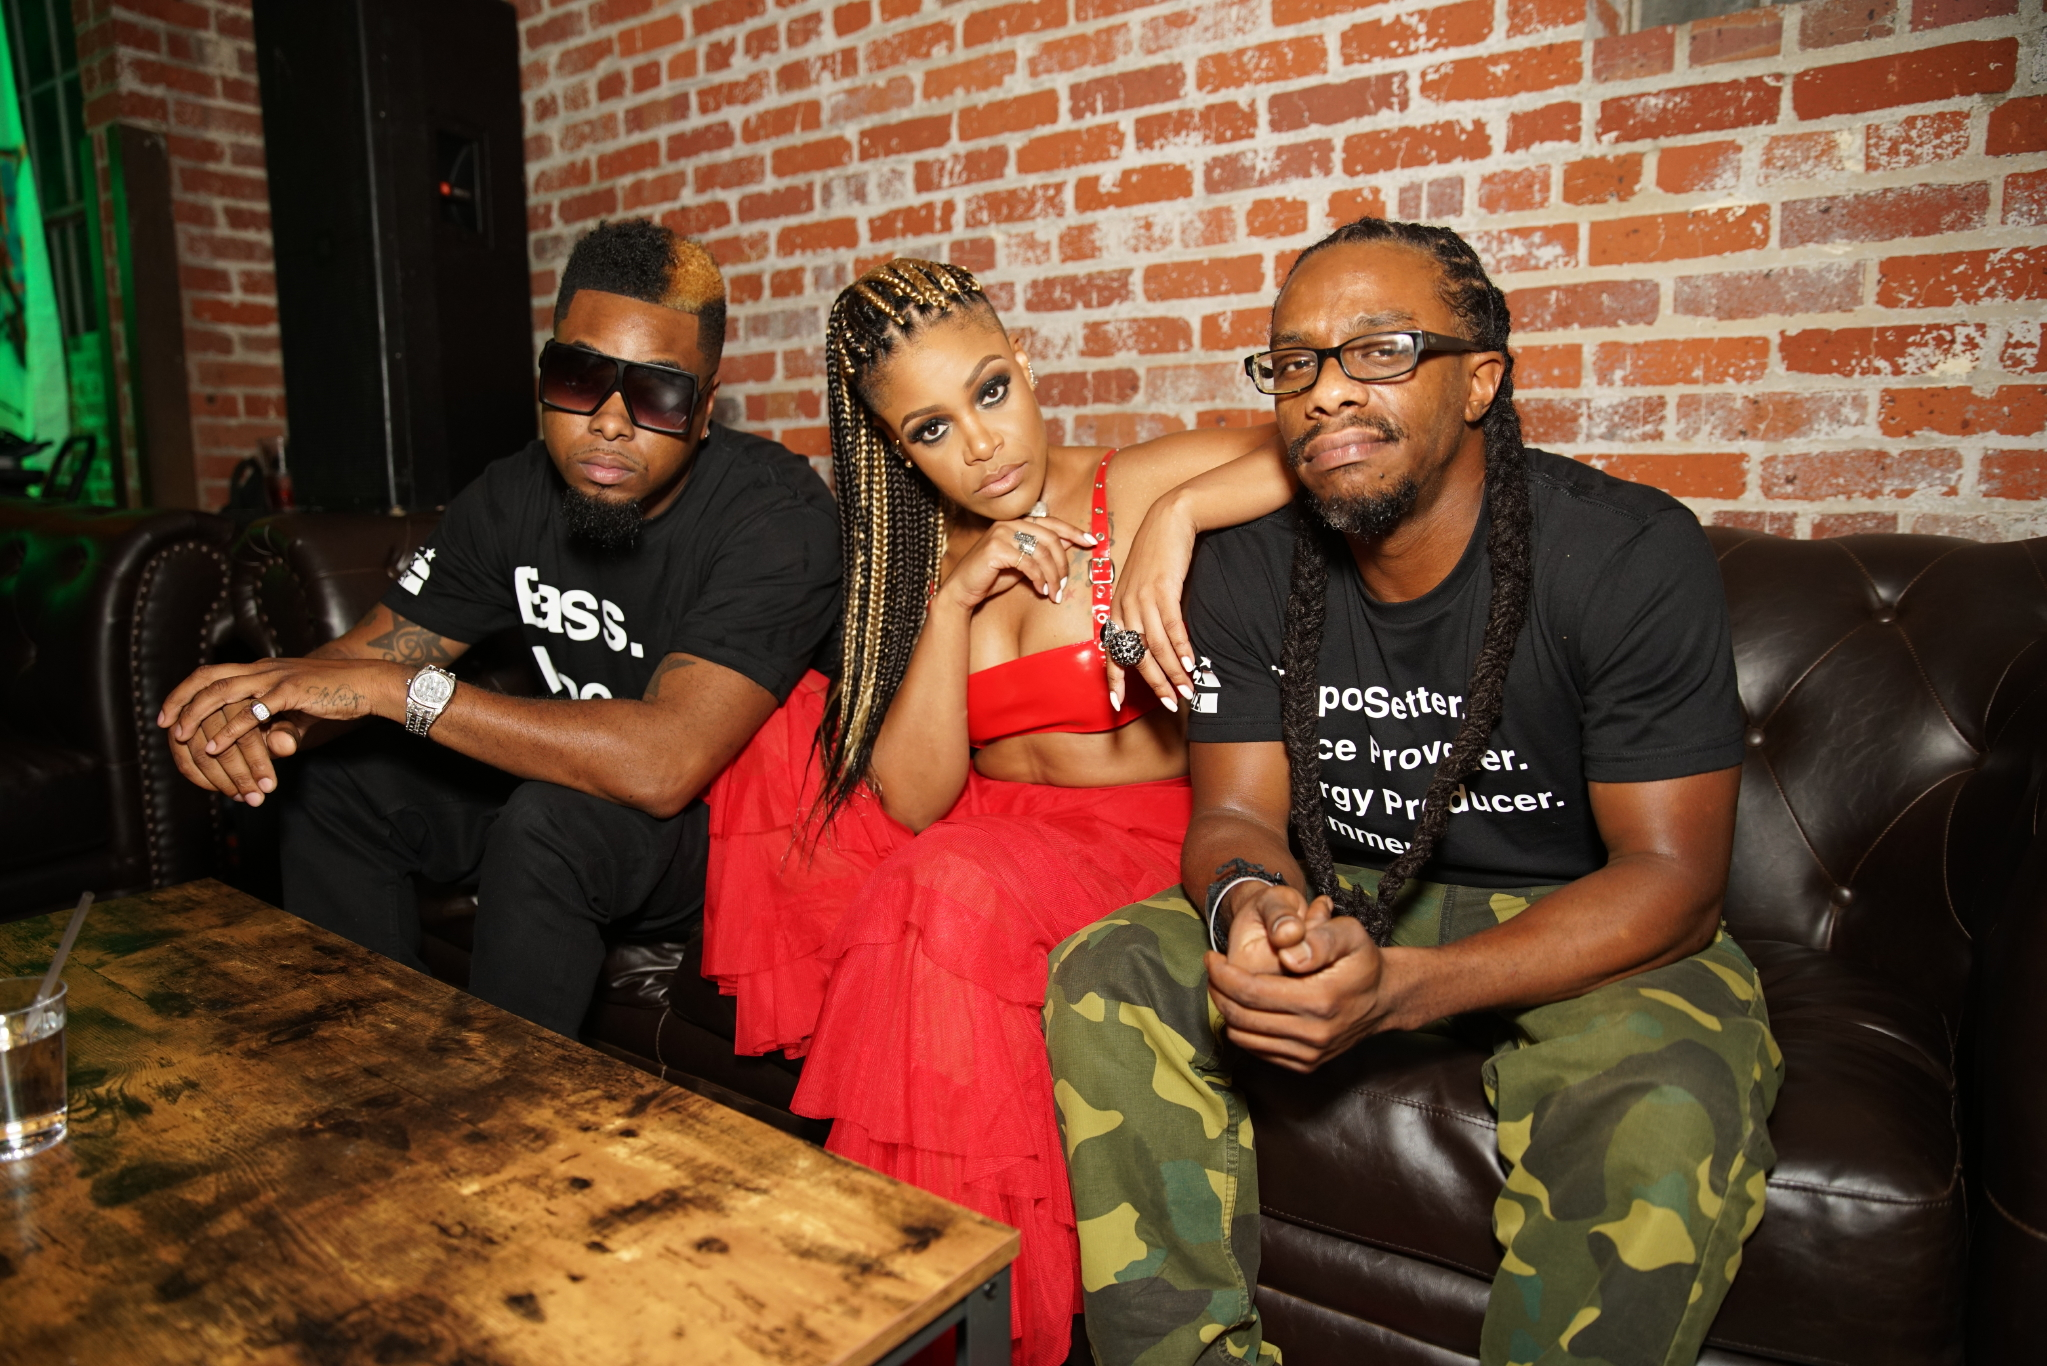 Three adults sit on a black leather couch together in a red-brick room. In the center is a medium skinned woman with long braids wearing a red outfit, and to her left and right are dark-skinned men wearing glasses and black t-shirts.